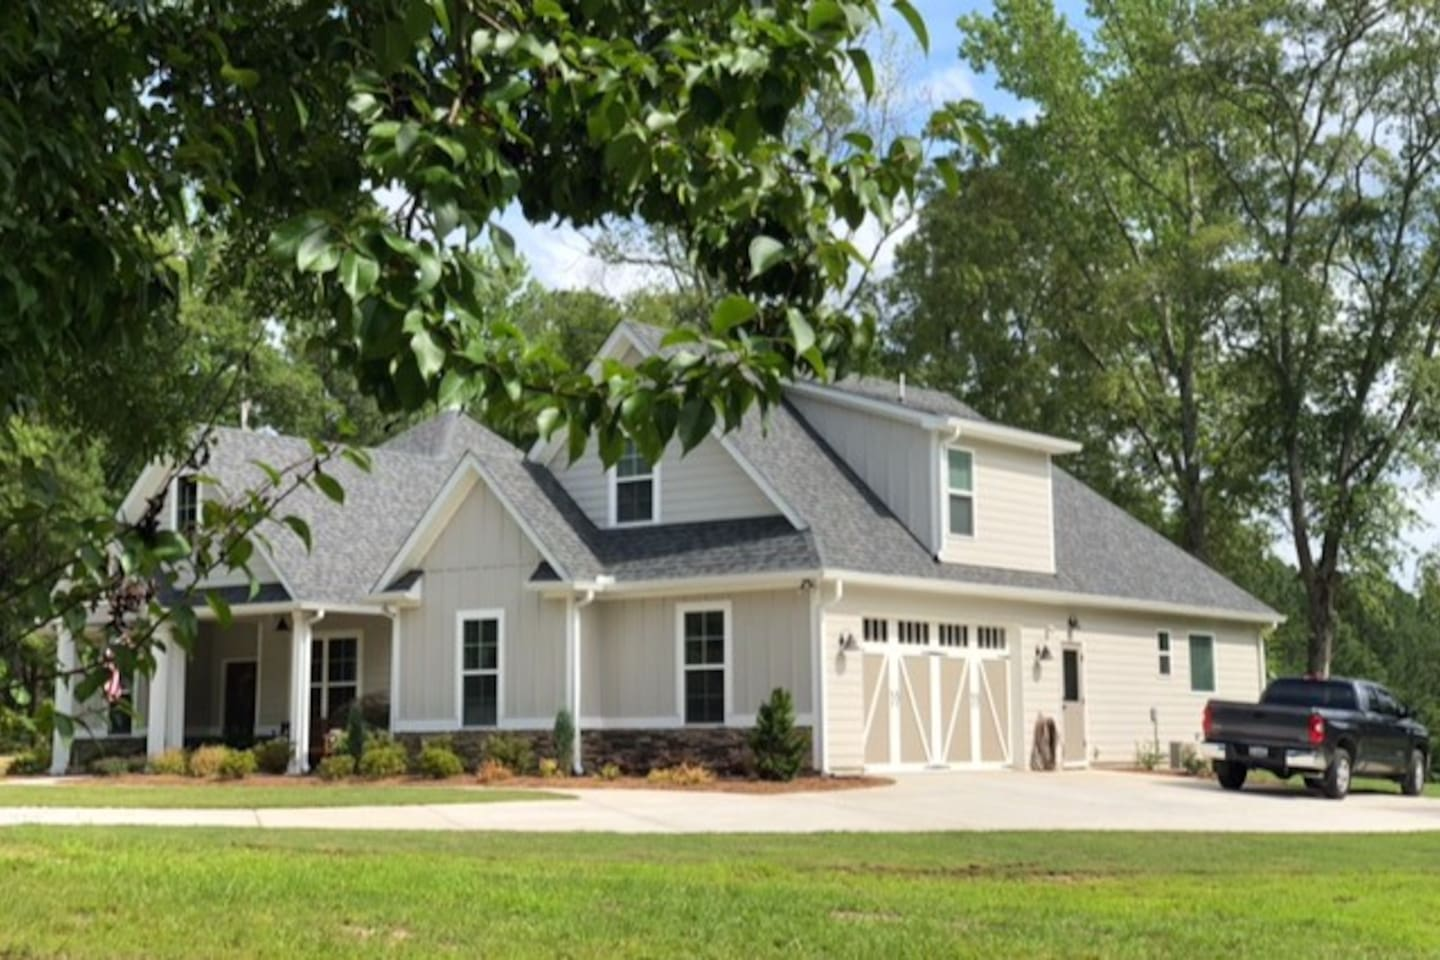 Honey Hill Farm!  Conveniently located: *25 minutes from Hartsfield-Jackson Atlanta Int'l Airport *15 minutes from Pinewood Studios, the Atlanta Motor Speedway or Senoia (filming site of The Walking Dead)